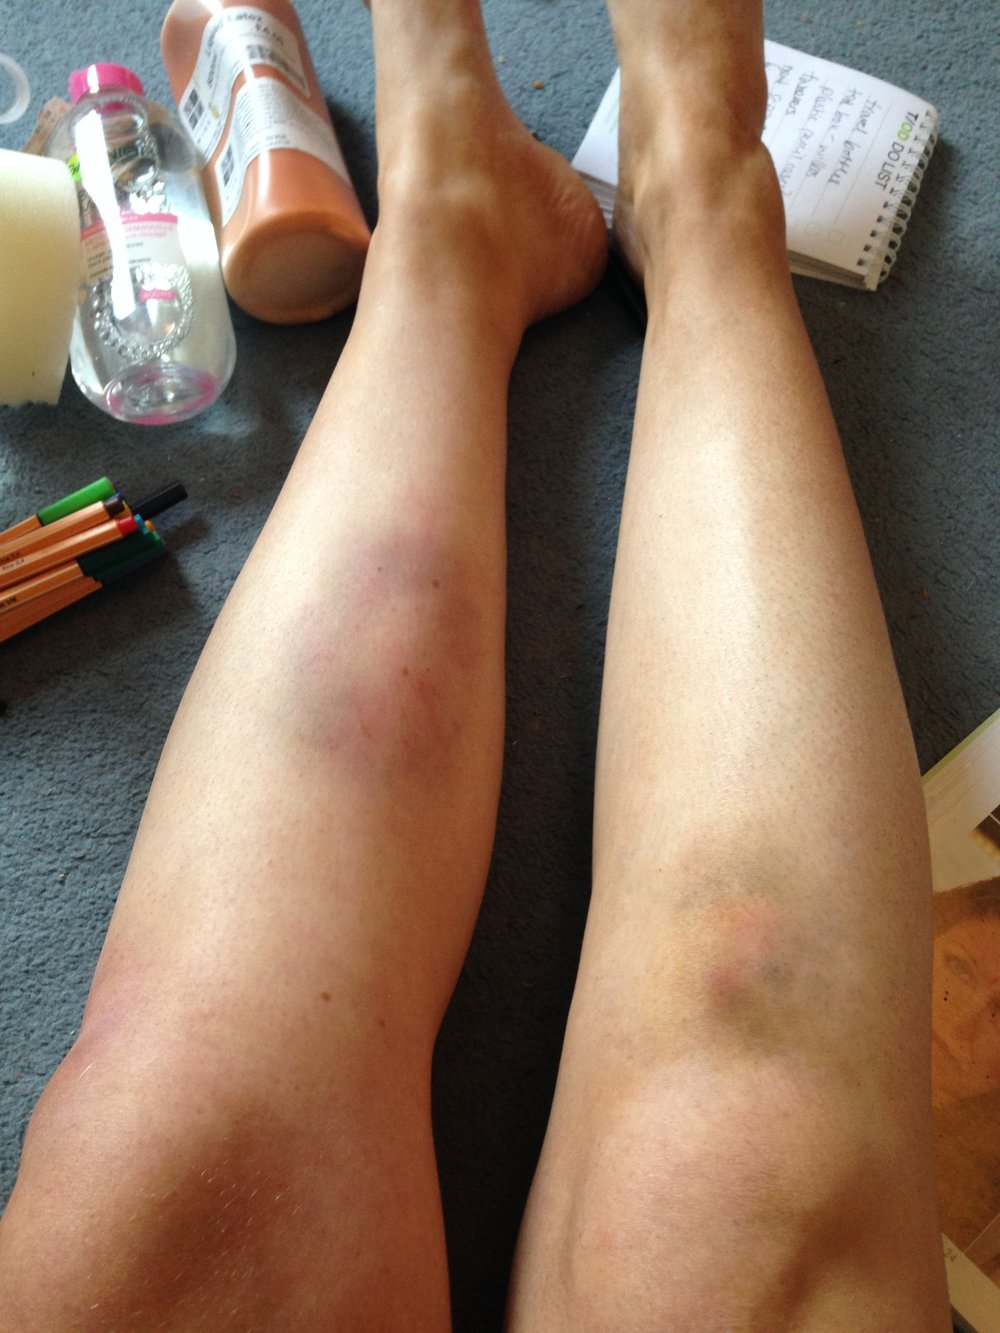 bruises with ben nye bruise wheel